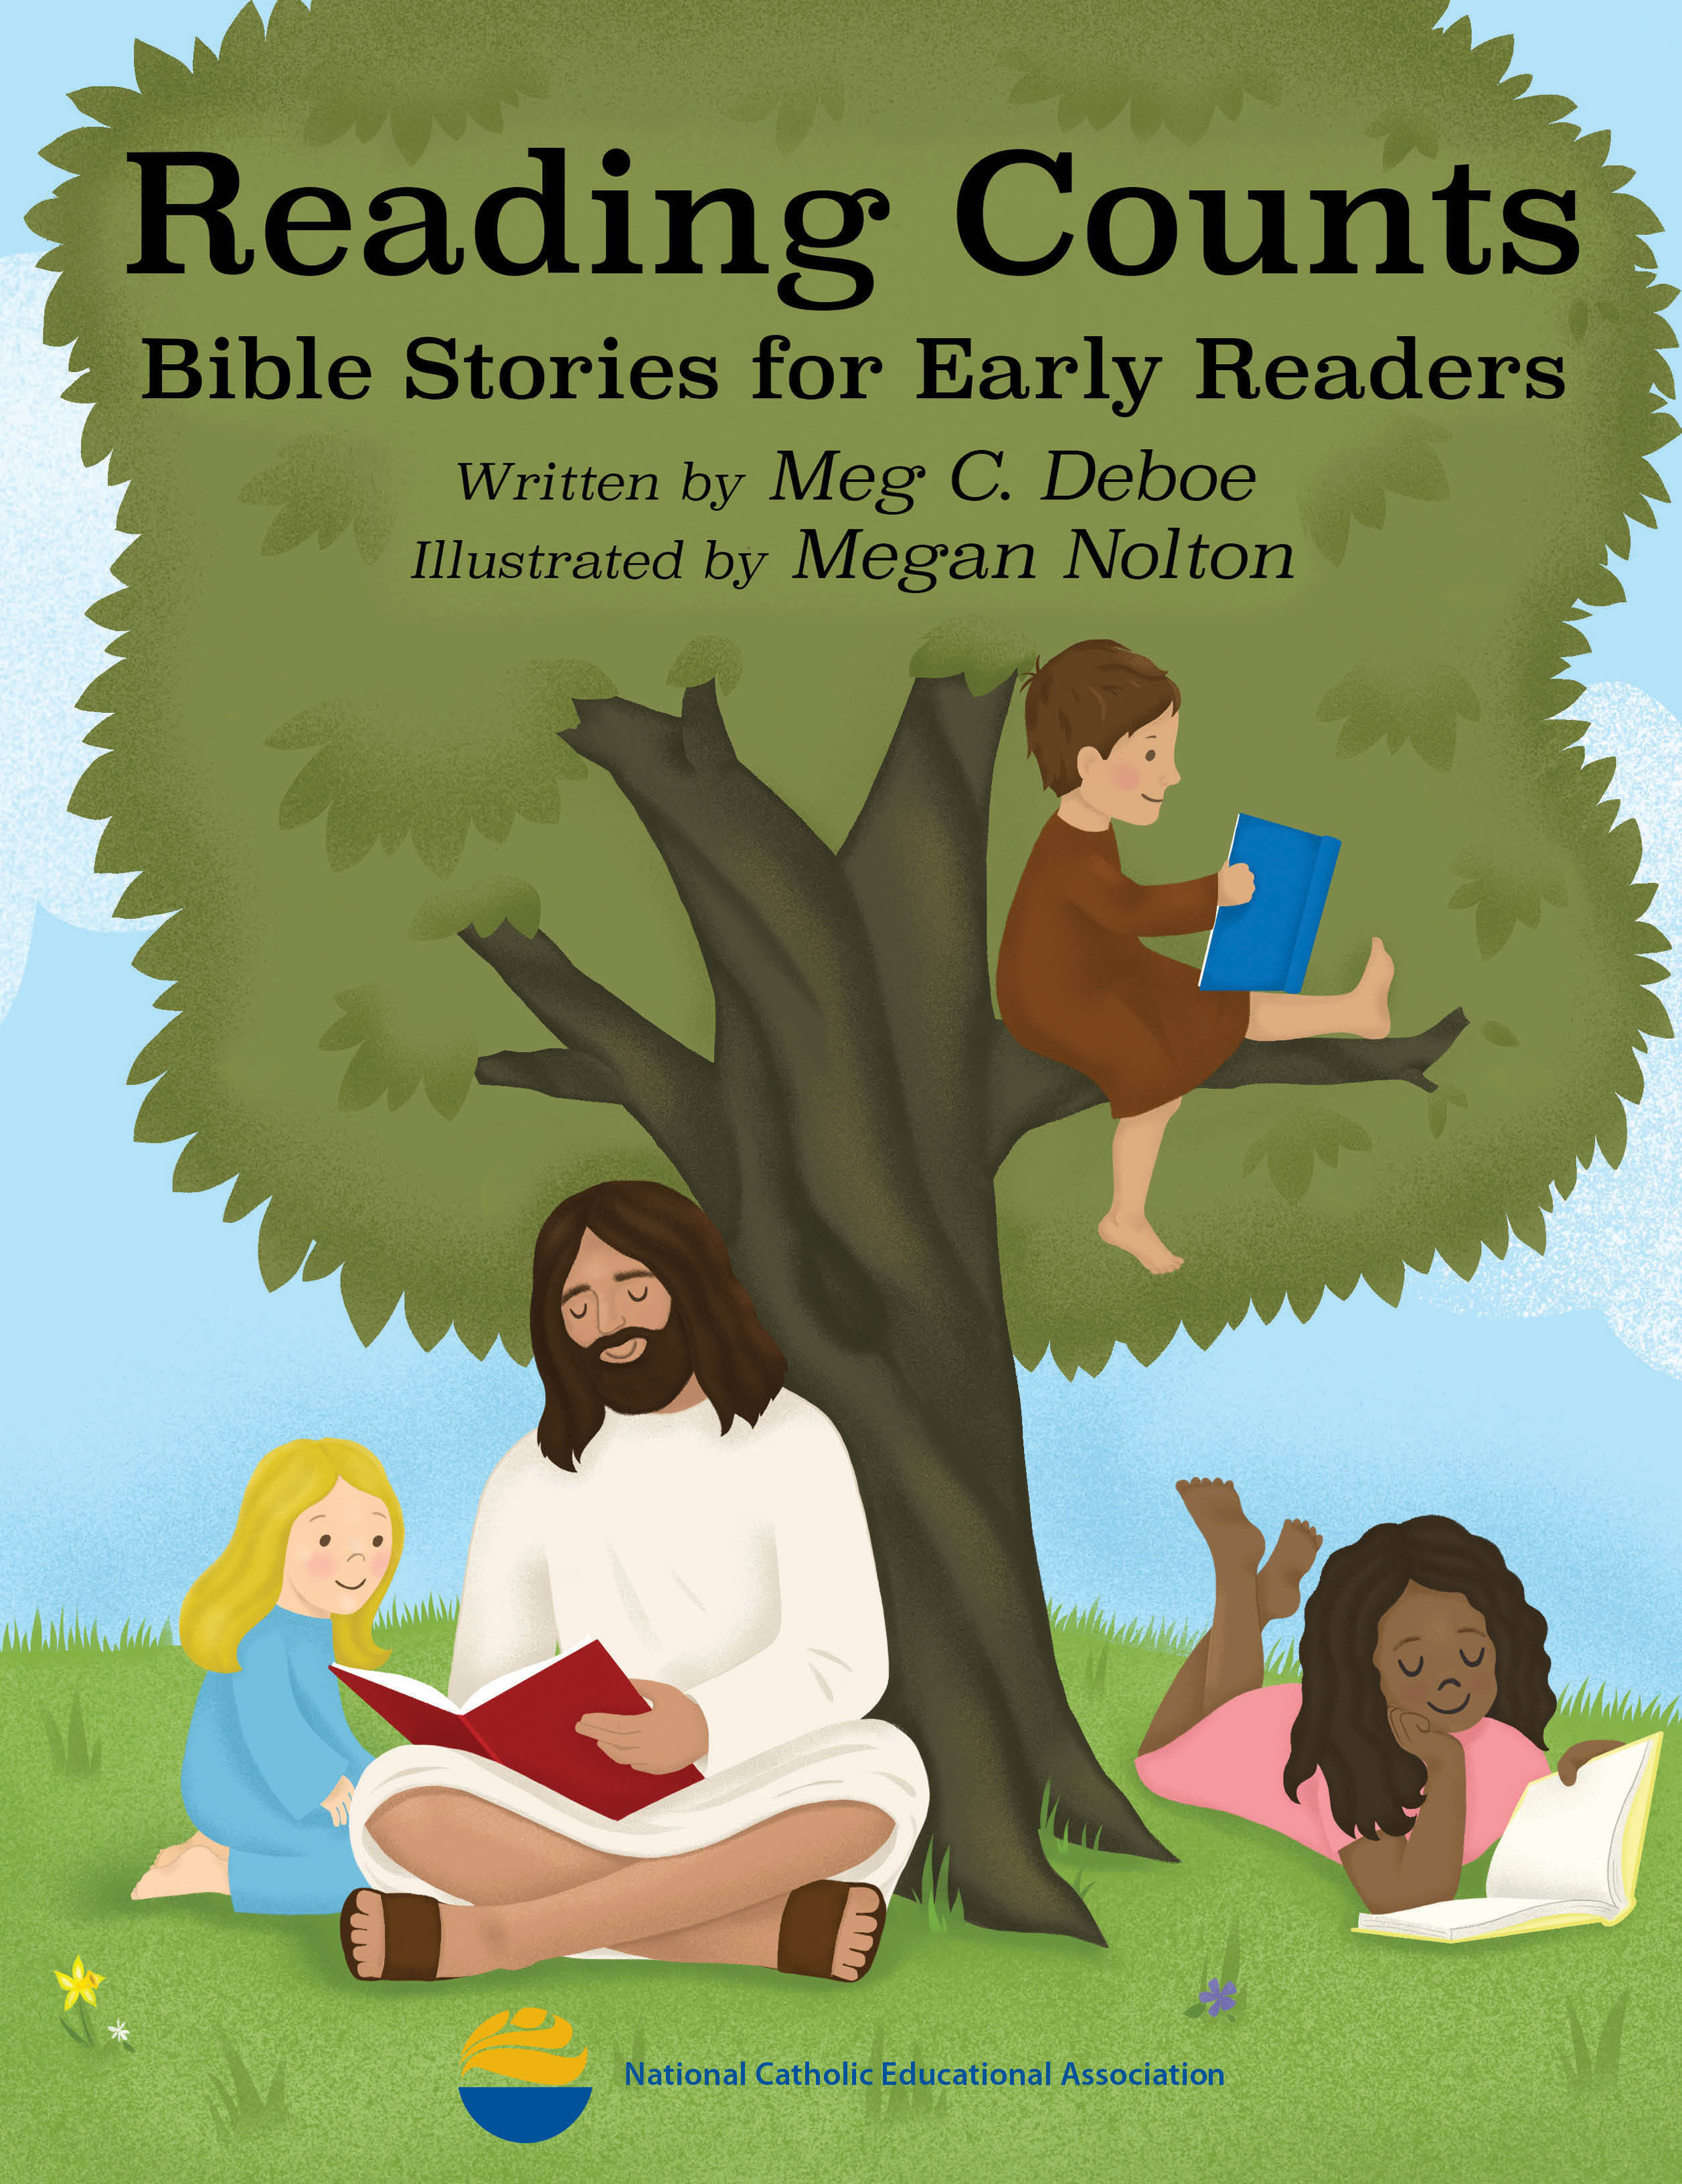 Reading Counts: Bible Stories for Early Readers